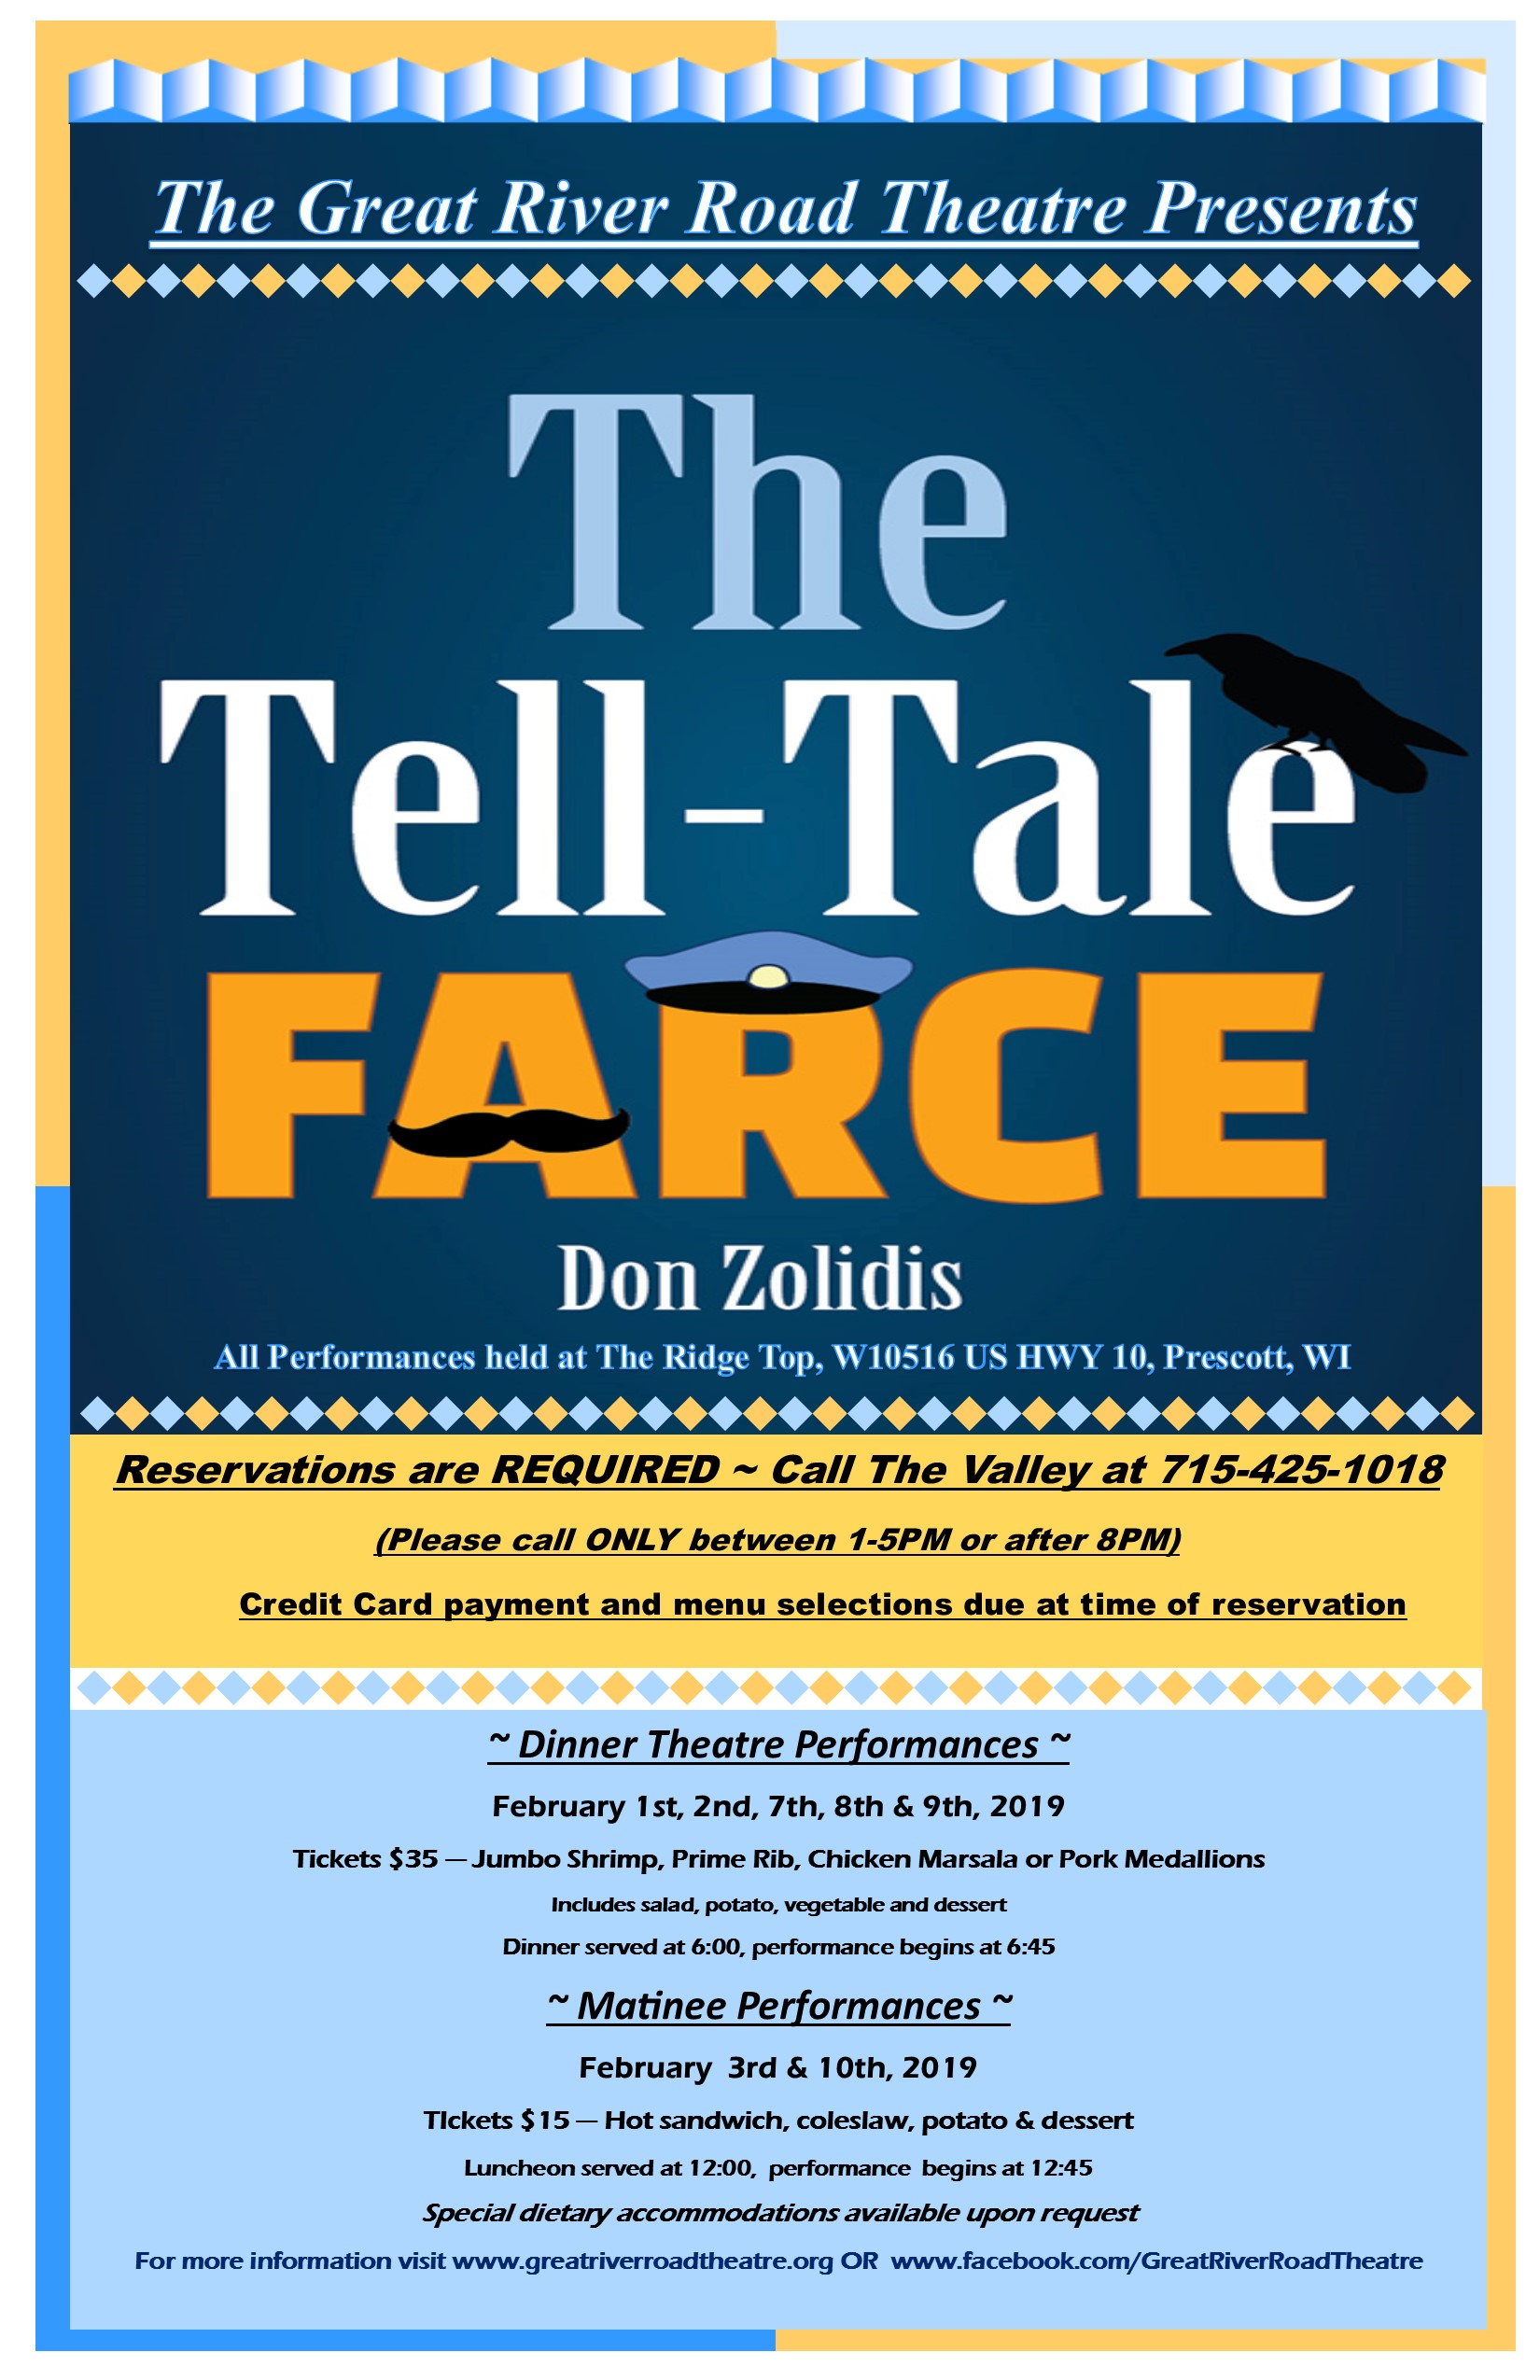 Tell-tale-farce